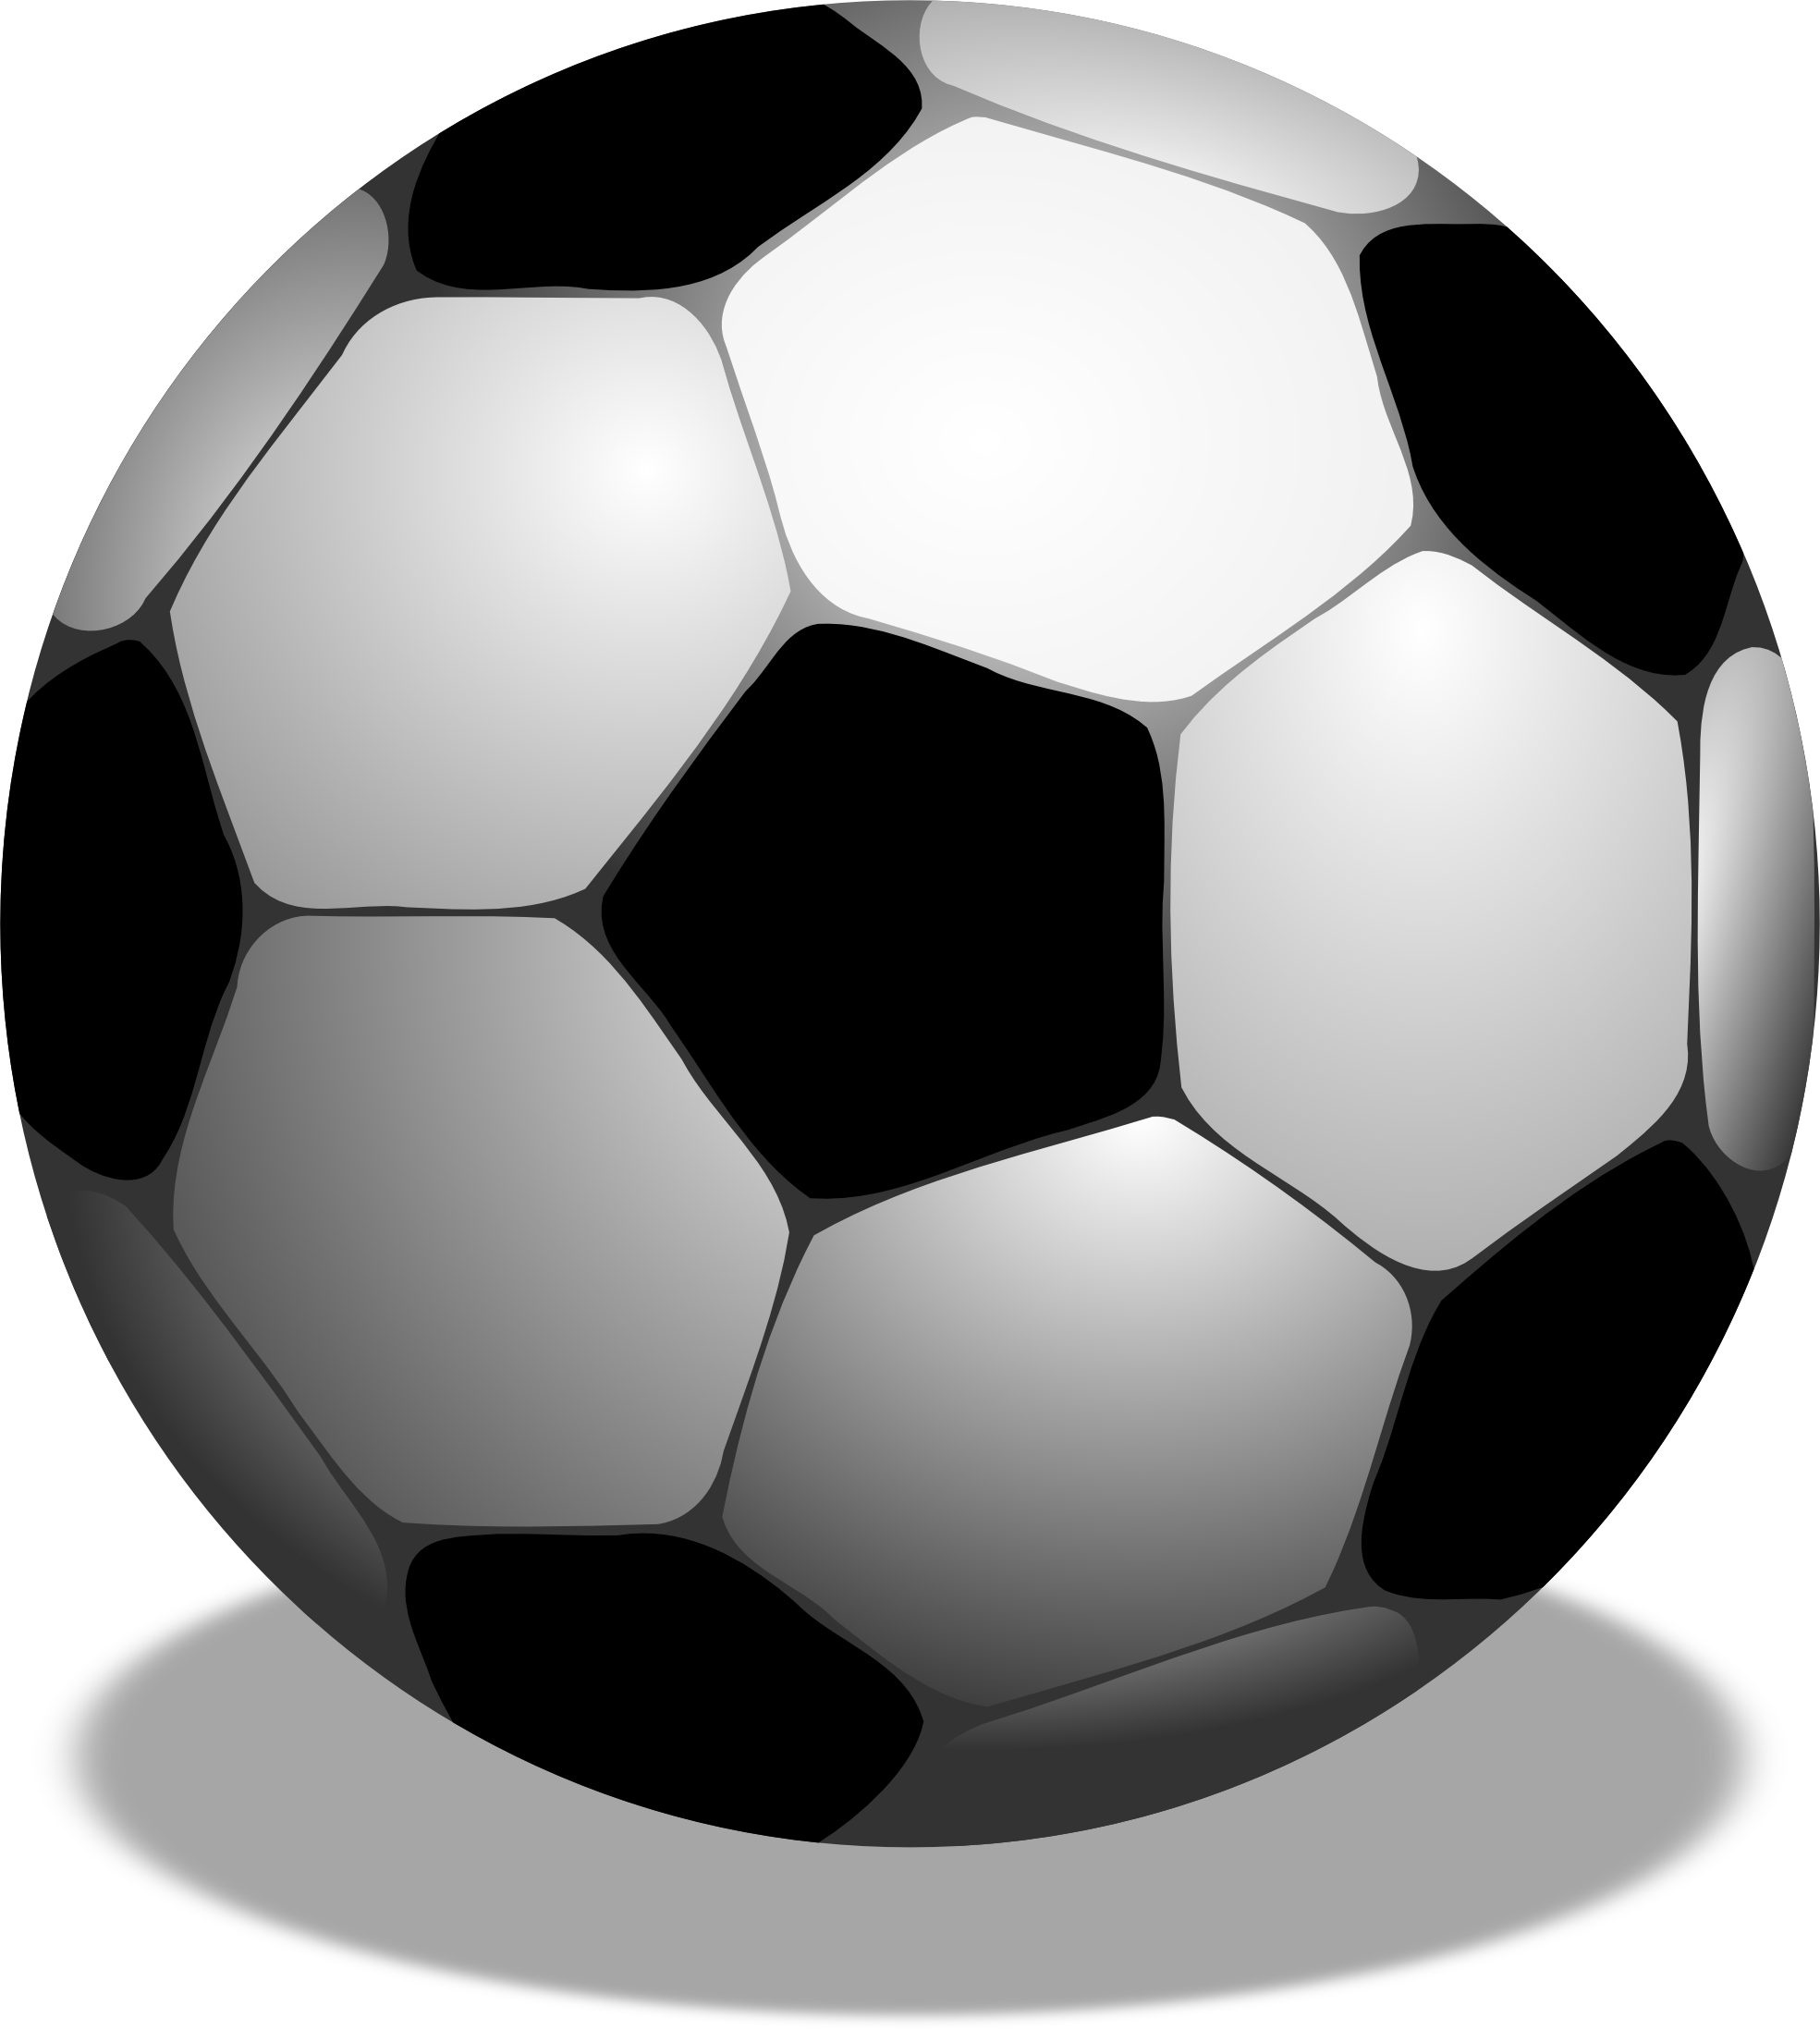 Soccer ball clip art free large images 3